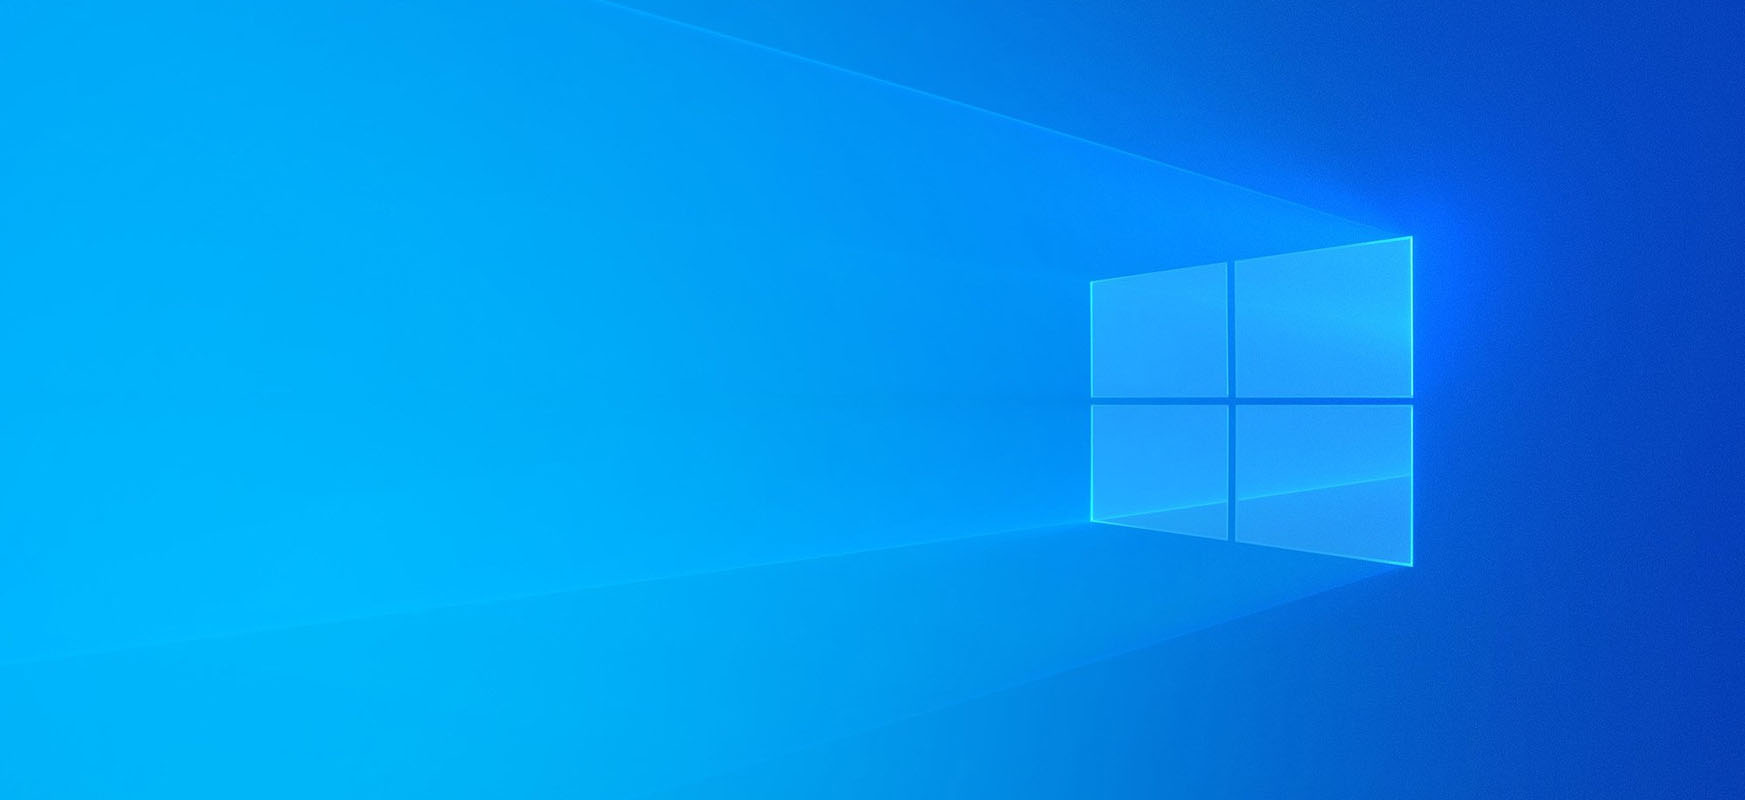 Windows 10 without new features until further notice. IT professionals now have more important things to worry about